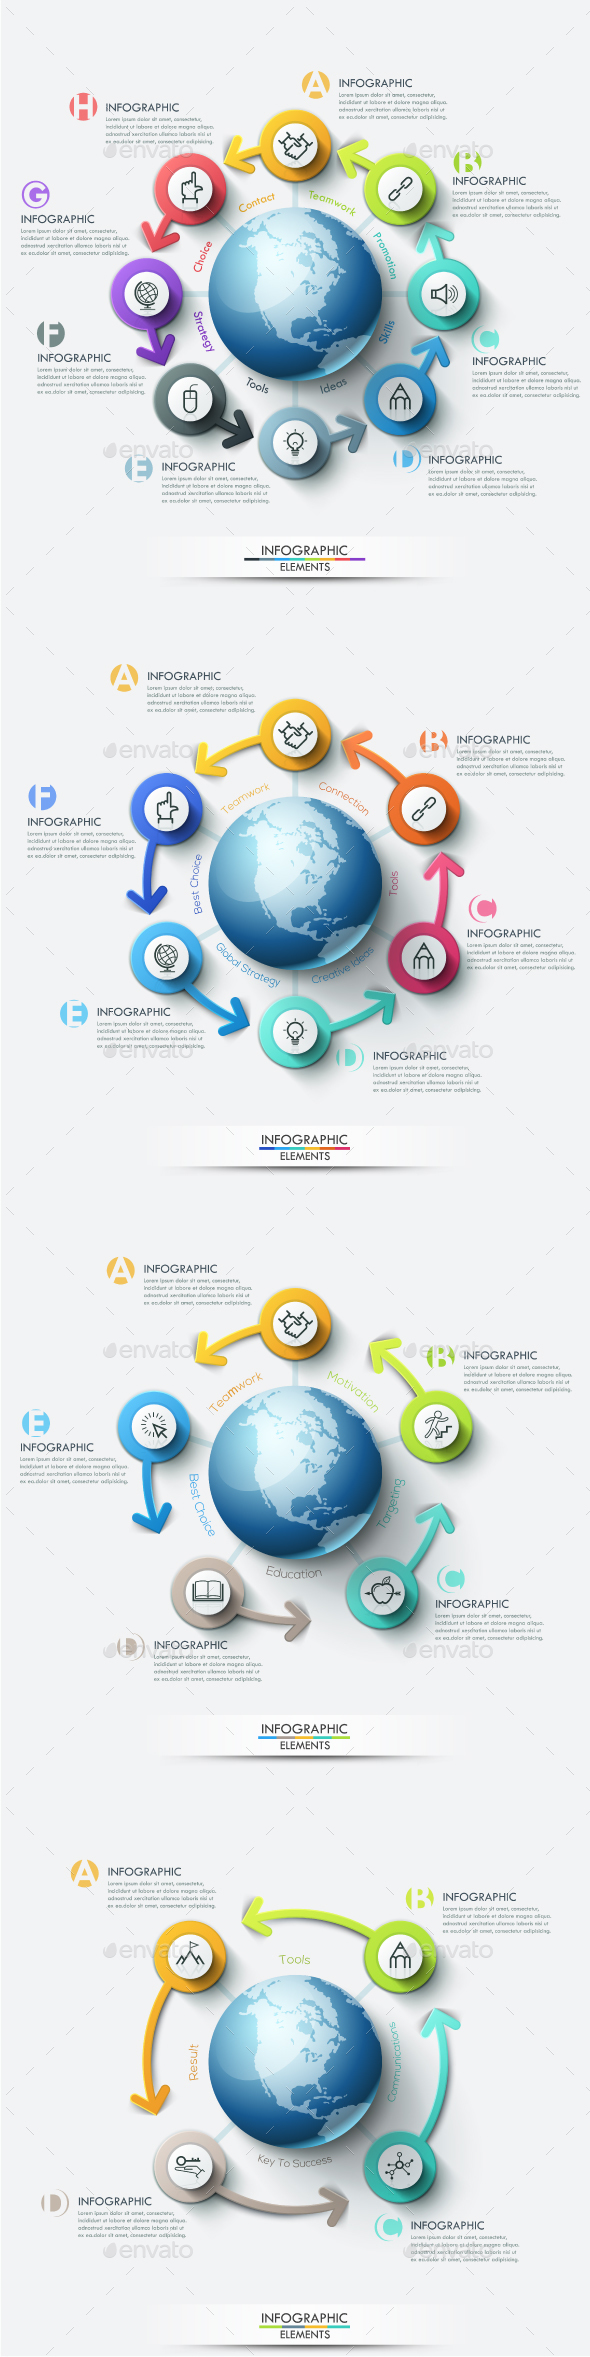 Modern Infographic Global Marketing Templates (4 Items) - Infographics